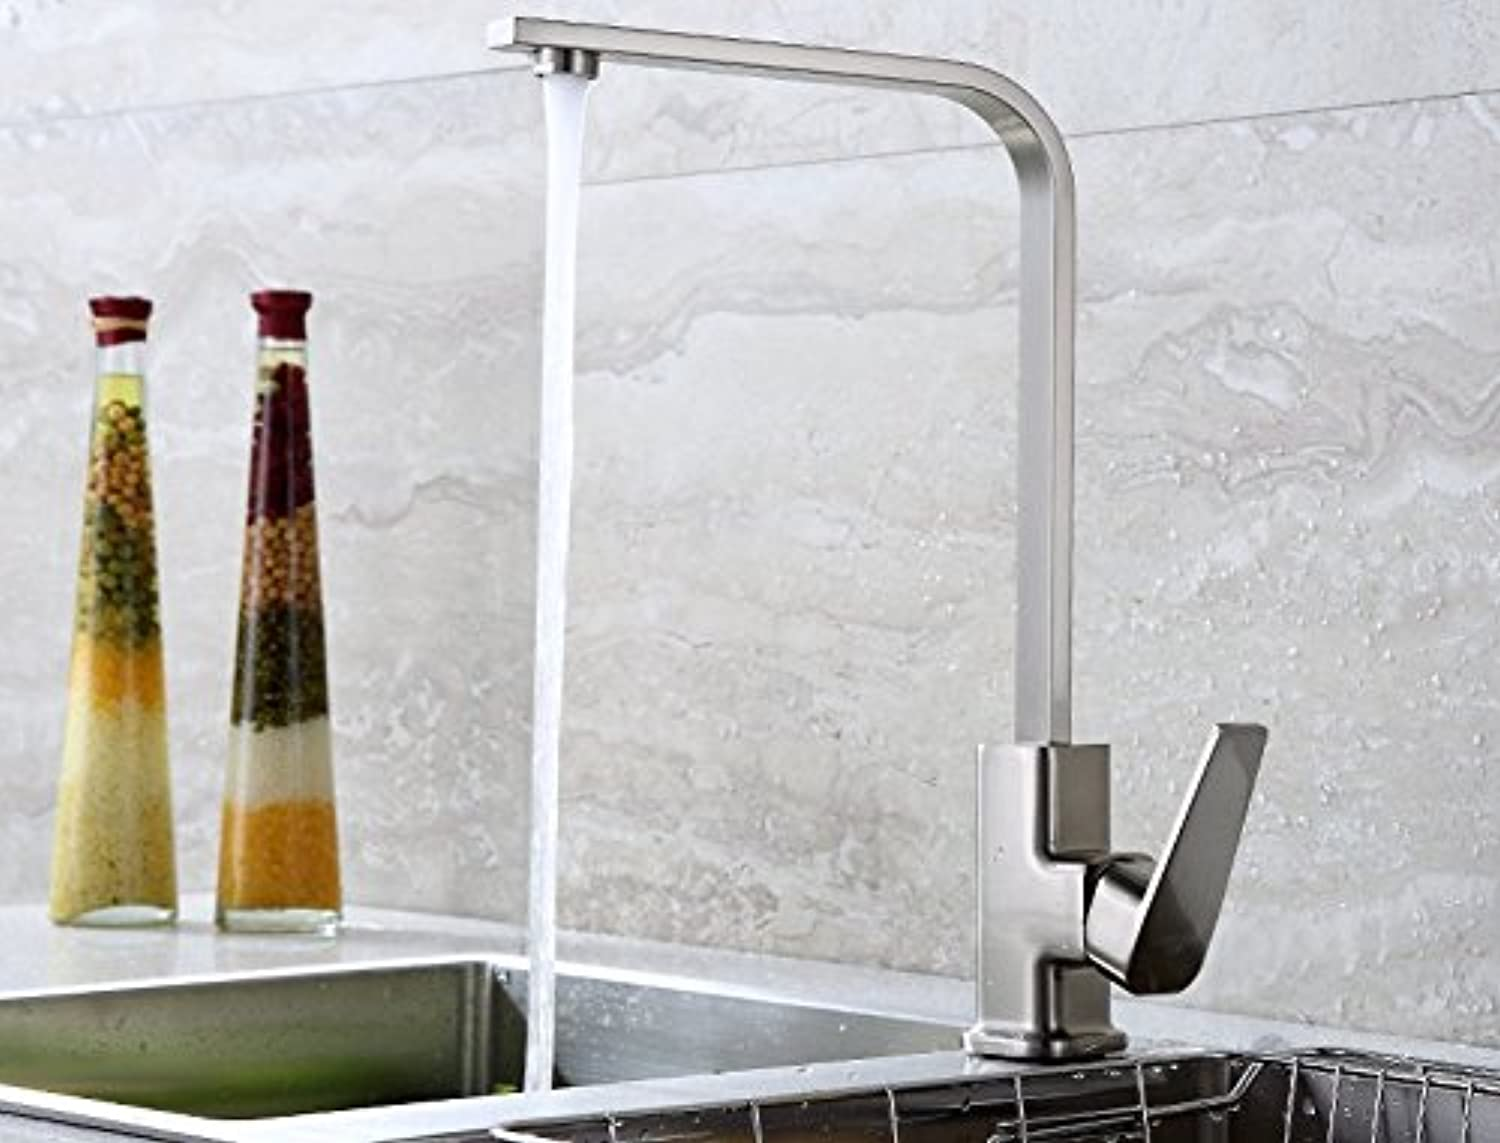 Diongrdk Universal, Lead-Free, All Copper, Kitchen Hot and Cold Water Faucet, Vegetable Basin, redating Wire Drawing, Stainless Steel Sink, Laundry Pool.